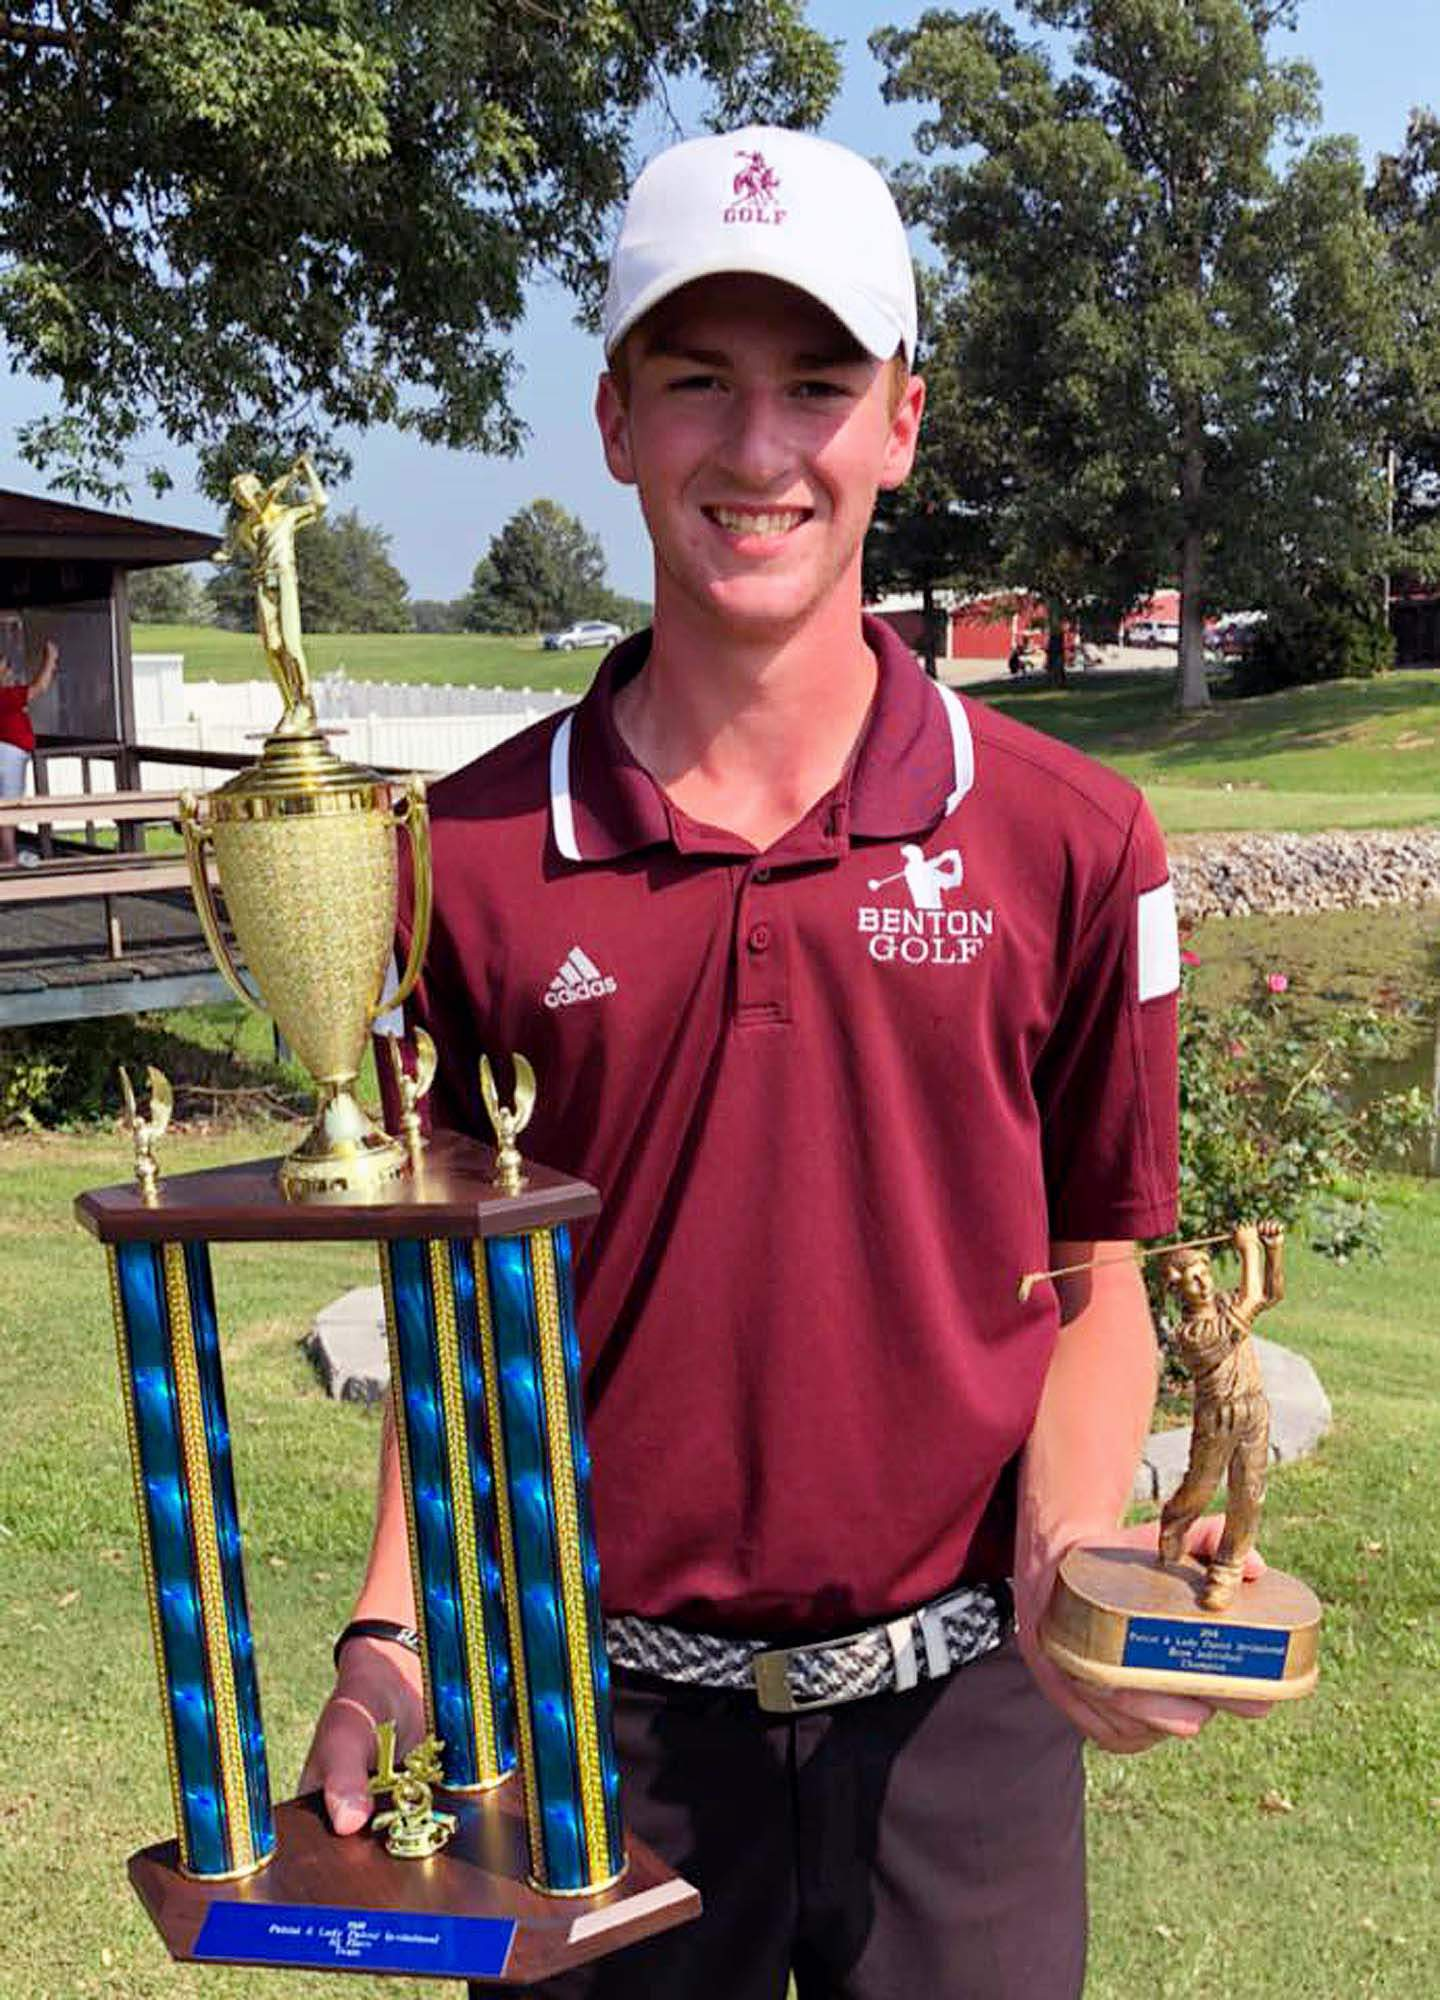 Brendan Luster holds the trophy he won for being the match medalist at the Massac County Invitational this past Saturday. It was the 10th time in Luster's career that he won medalist honors.